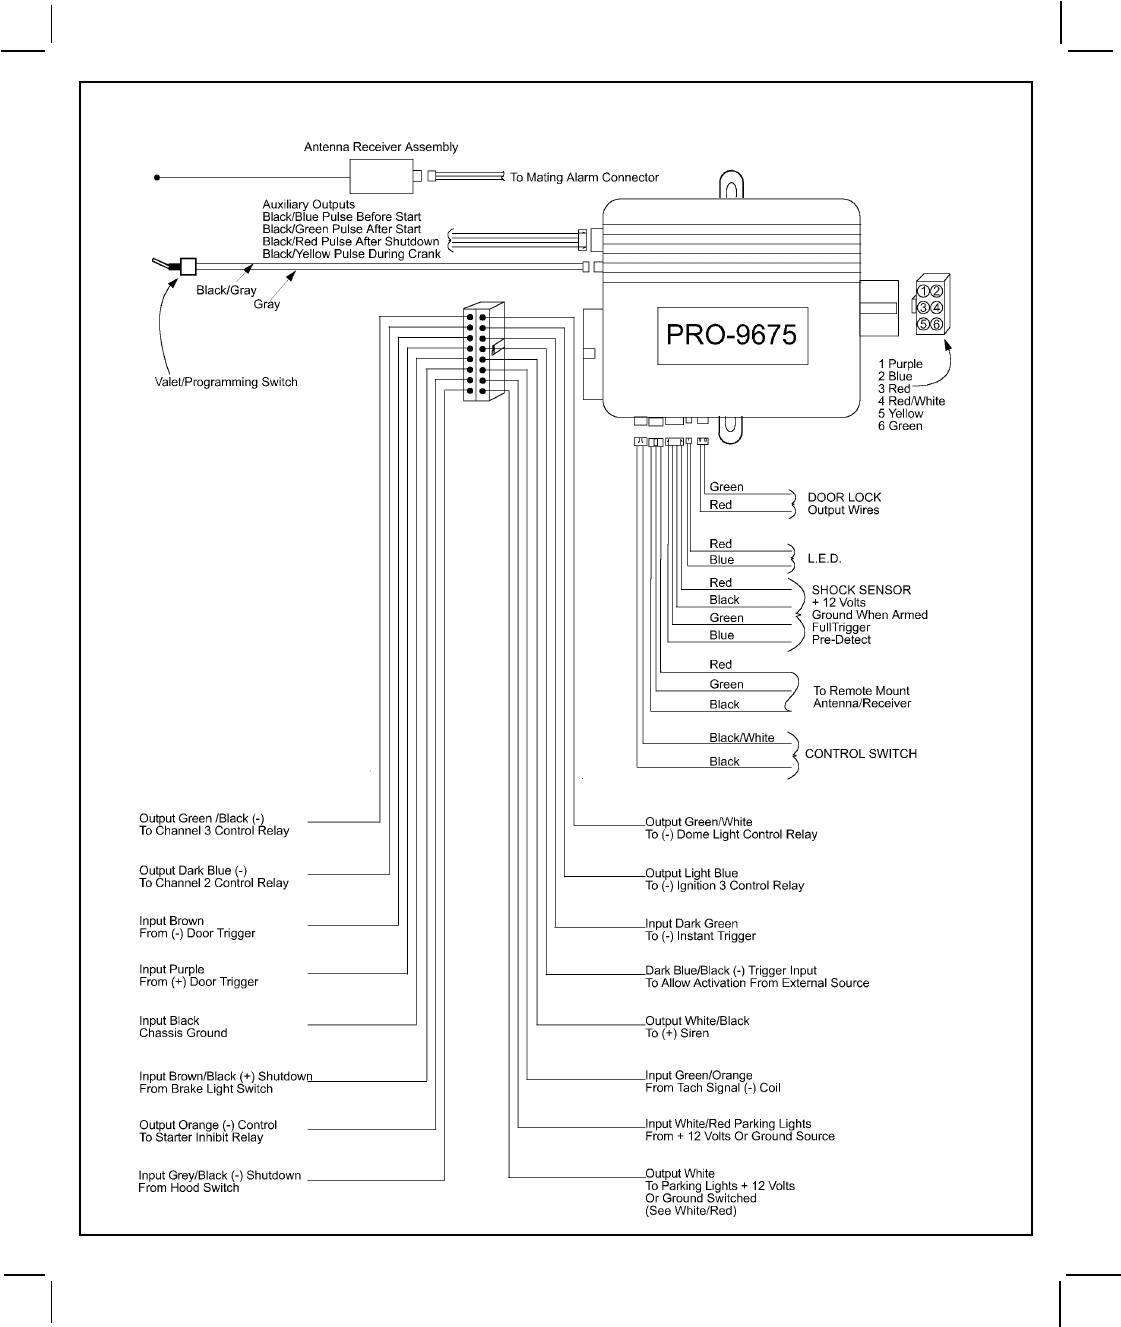 63de61ef f929 4813 ac08 919f46a5cd26 bg16 page 22 of audiovox automobile alarm pro 9675ft user guide audiovox wiring diagrams at readyjetset.co